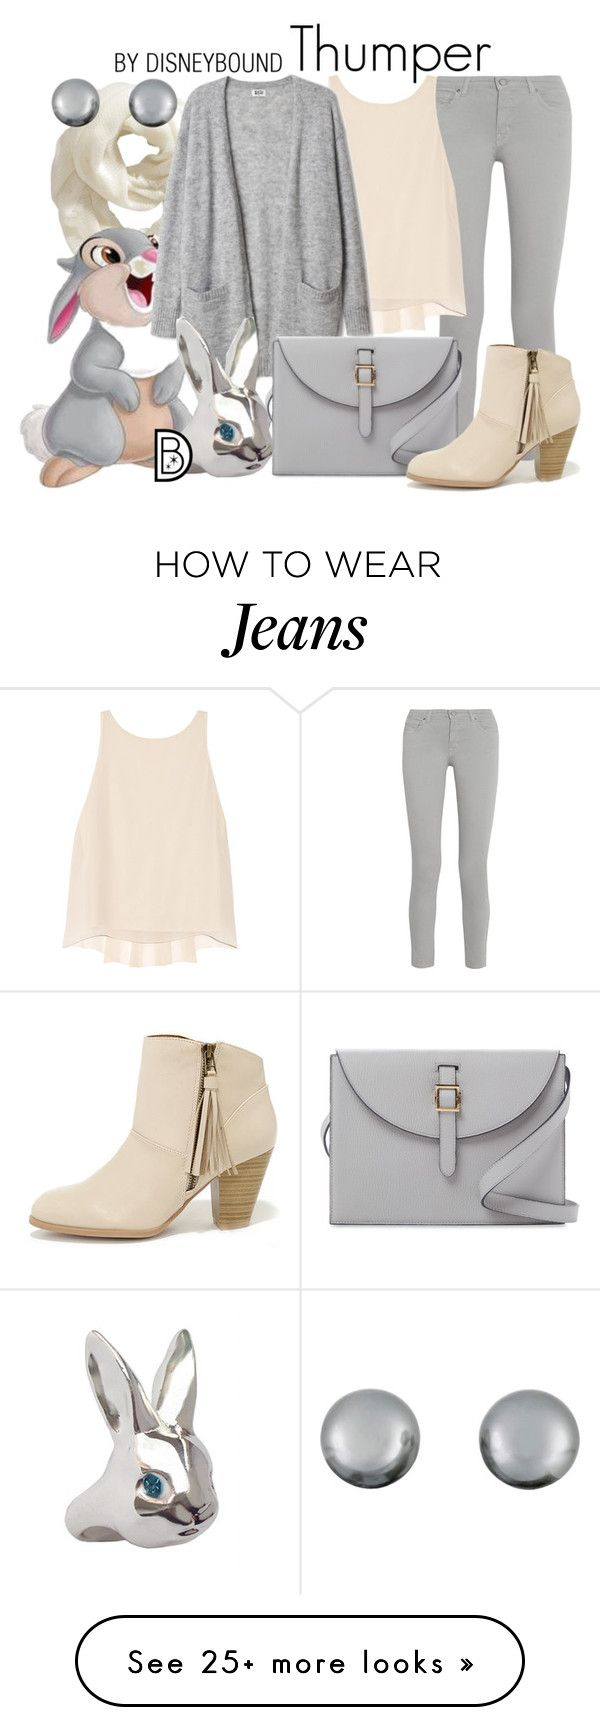 """Thumper"" by leslieakay on Polyvore featuring Old Navy, Thumper, dVb Victoria Beckham, Alice + Olivia, Meli Melo, Qupid, Lazy Oaf, Kenneth Jay Lane, disney and disneybound"